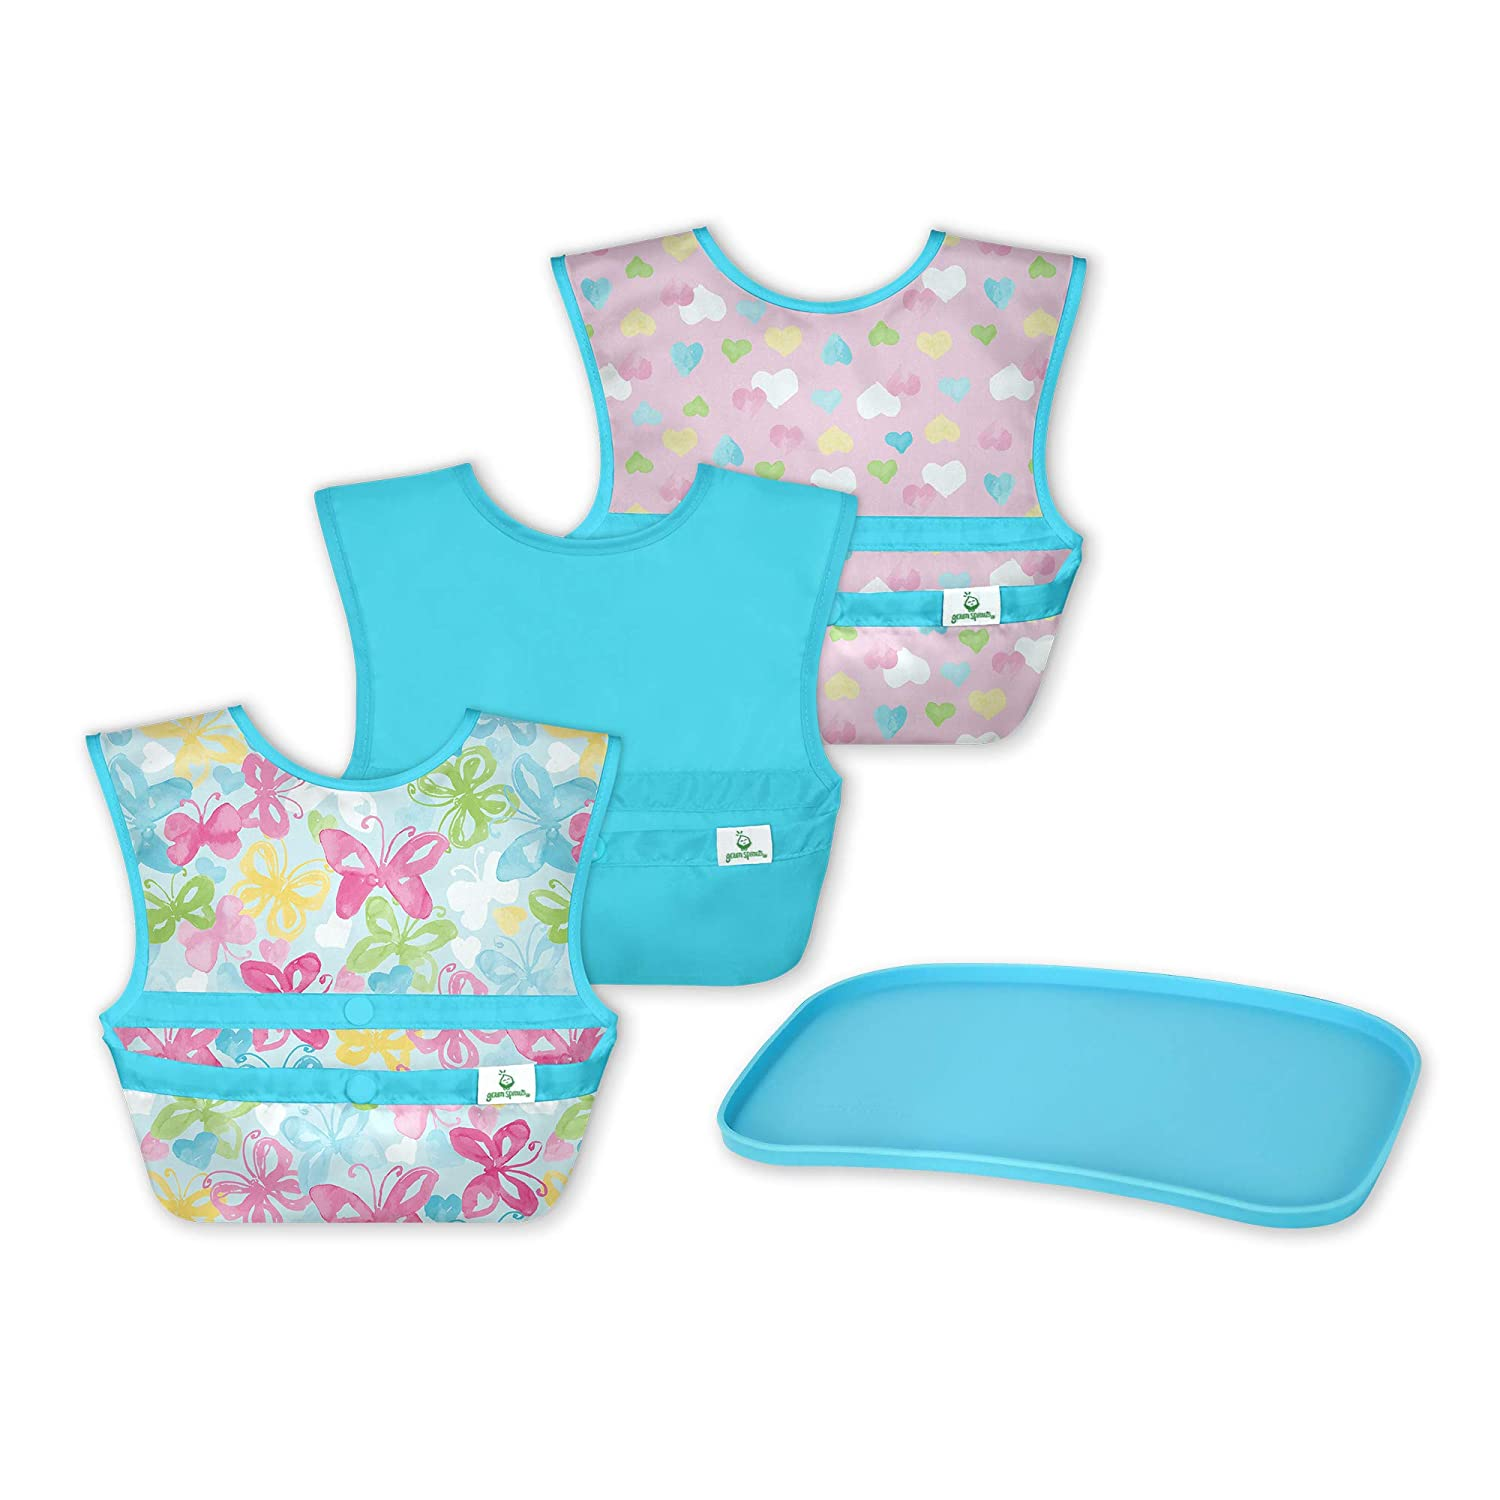 green sprouts Mealtime Finger Food First Foods Gift Set | Baby and Toddler Feeding Set | Roll up The Messy bib, snap, and go | Platemat Made from Silicone | Easy to Clean